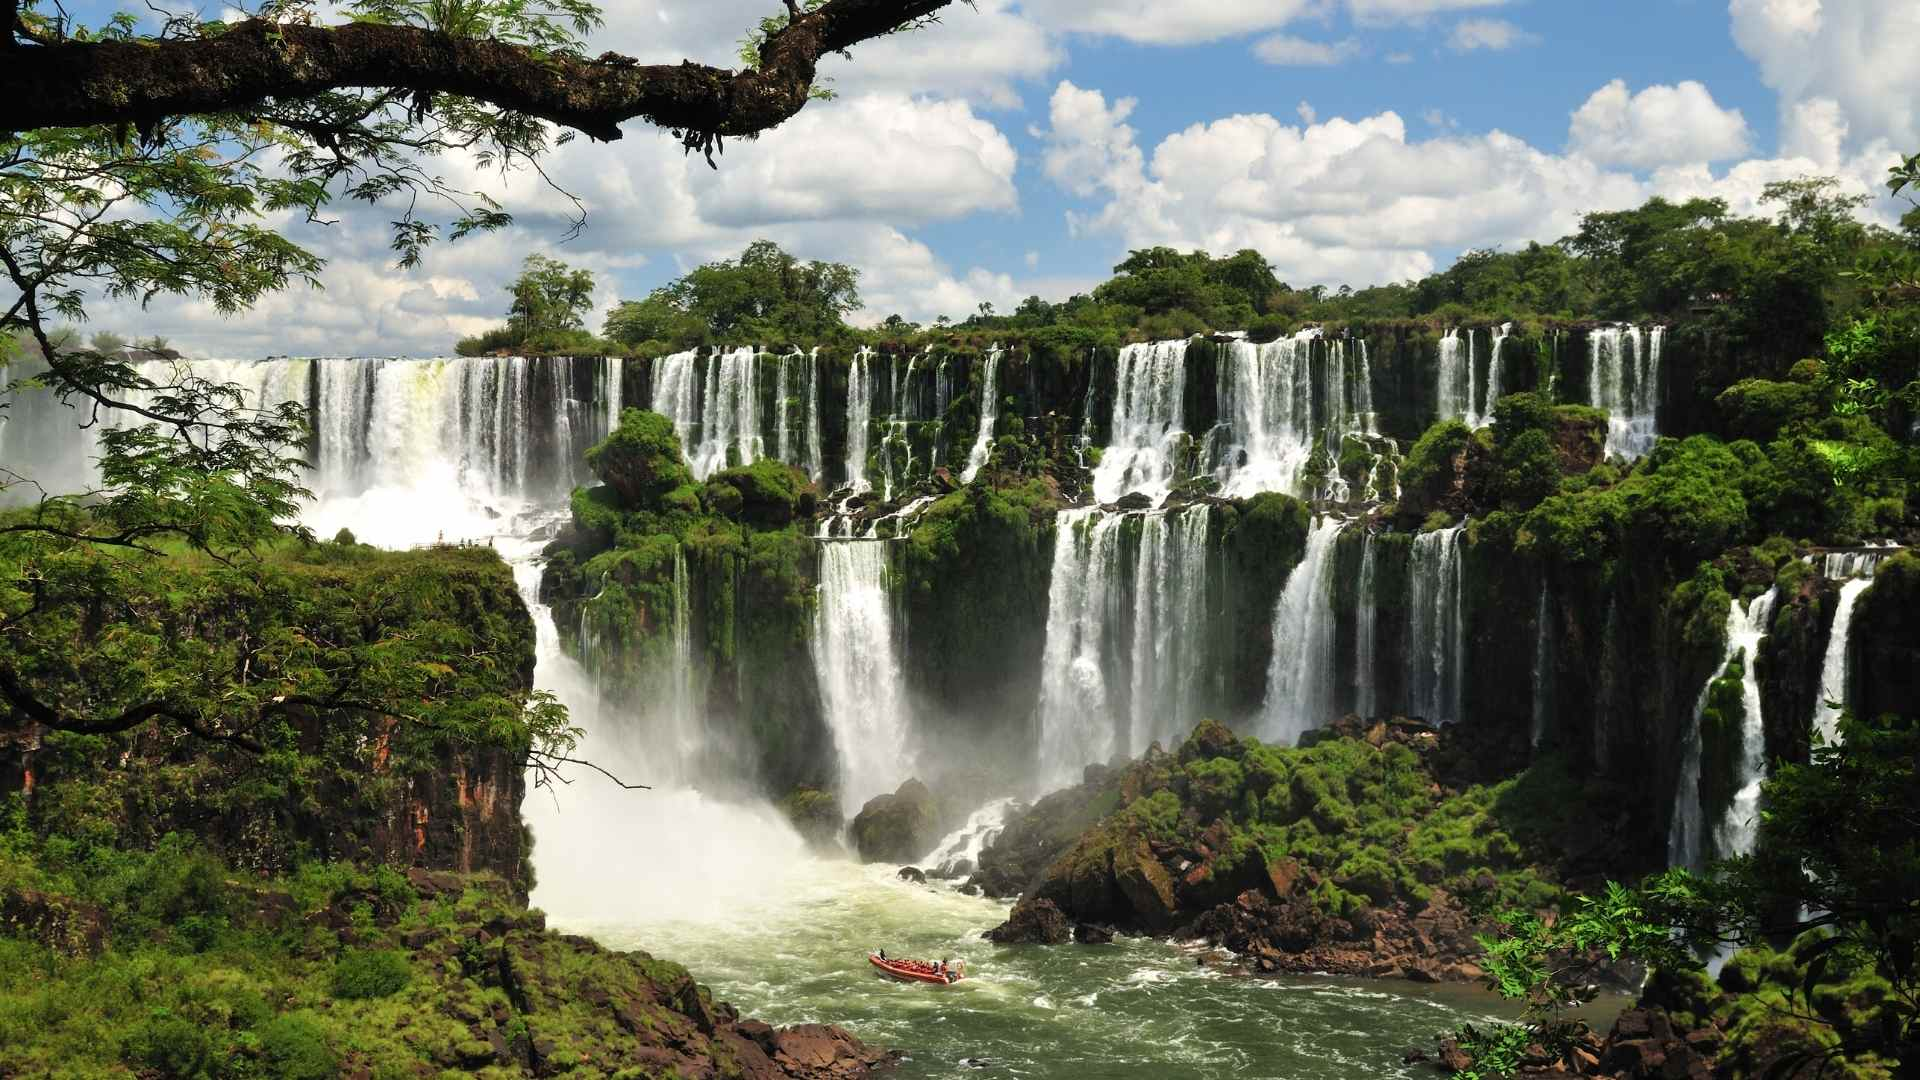 Iguazu Falls Brazil and Argentina beautiful waterfalls